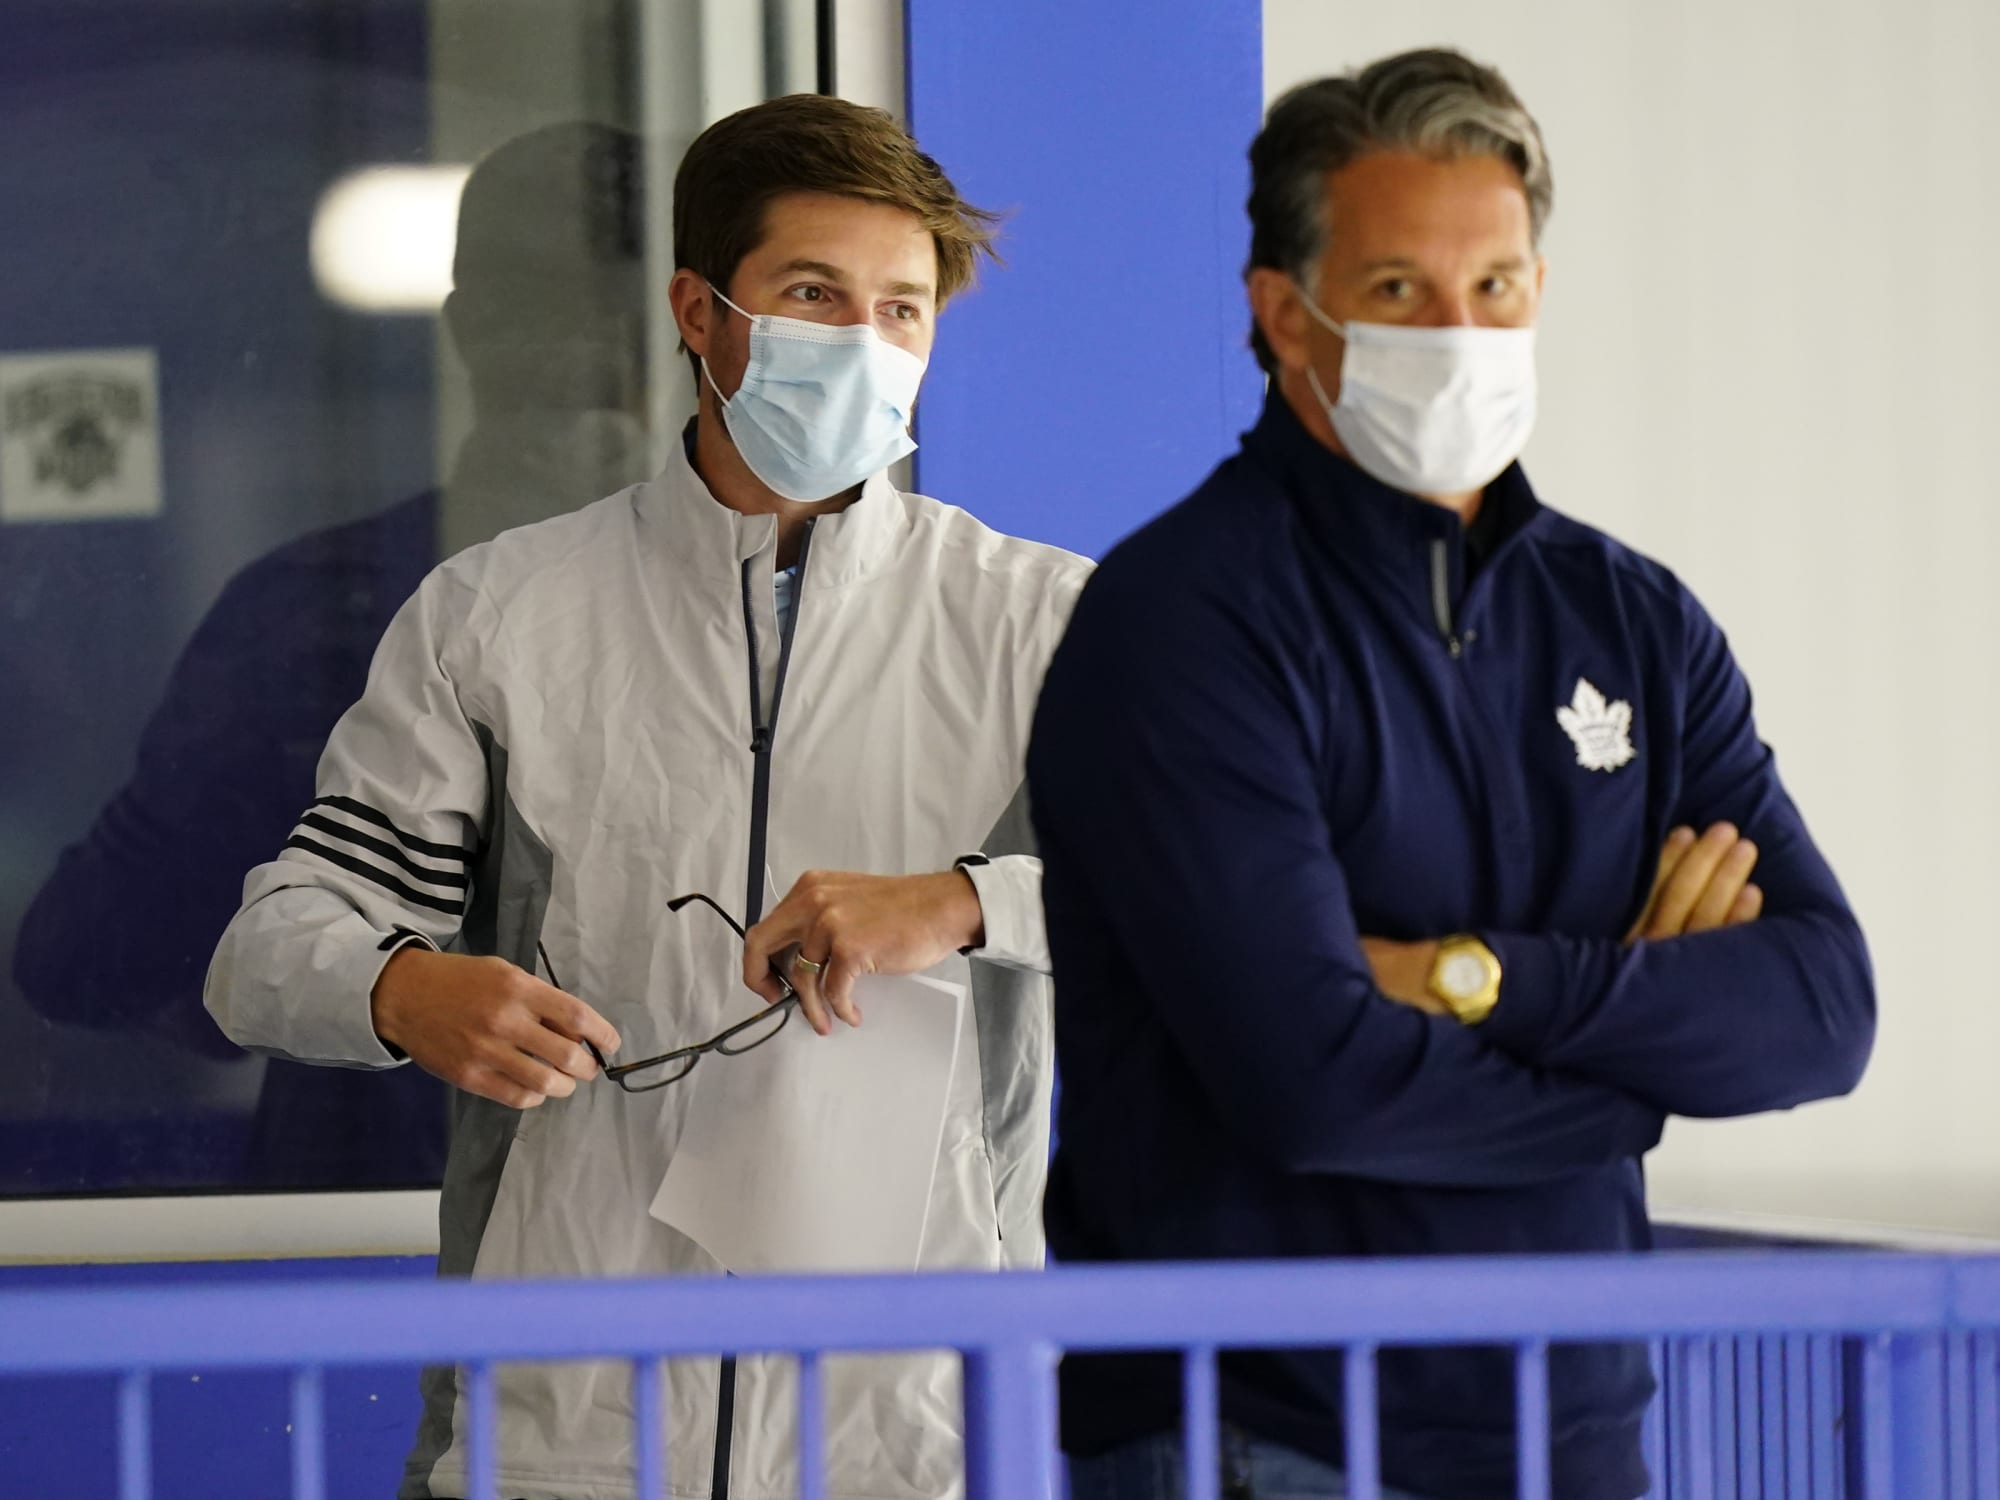 Toronto Maple Leafs Smartly Take Quiet Approach to Free Agency